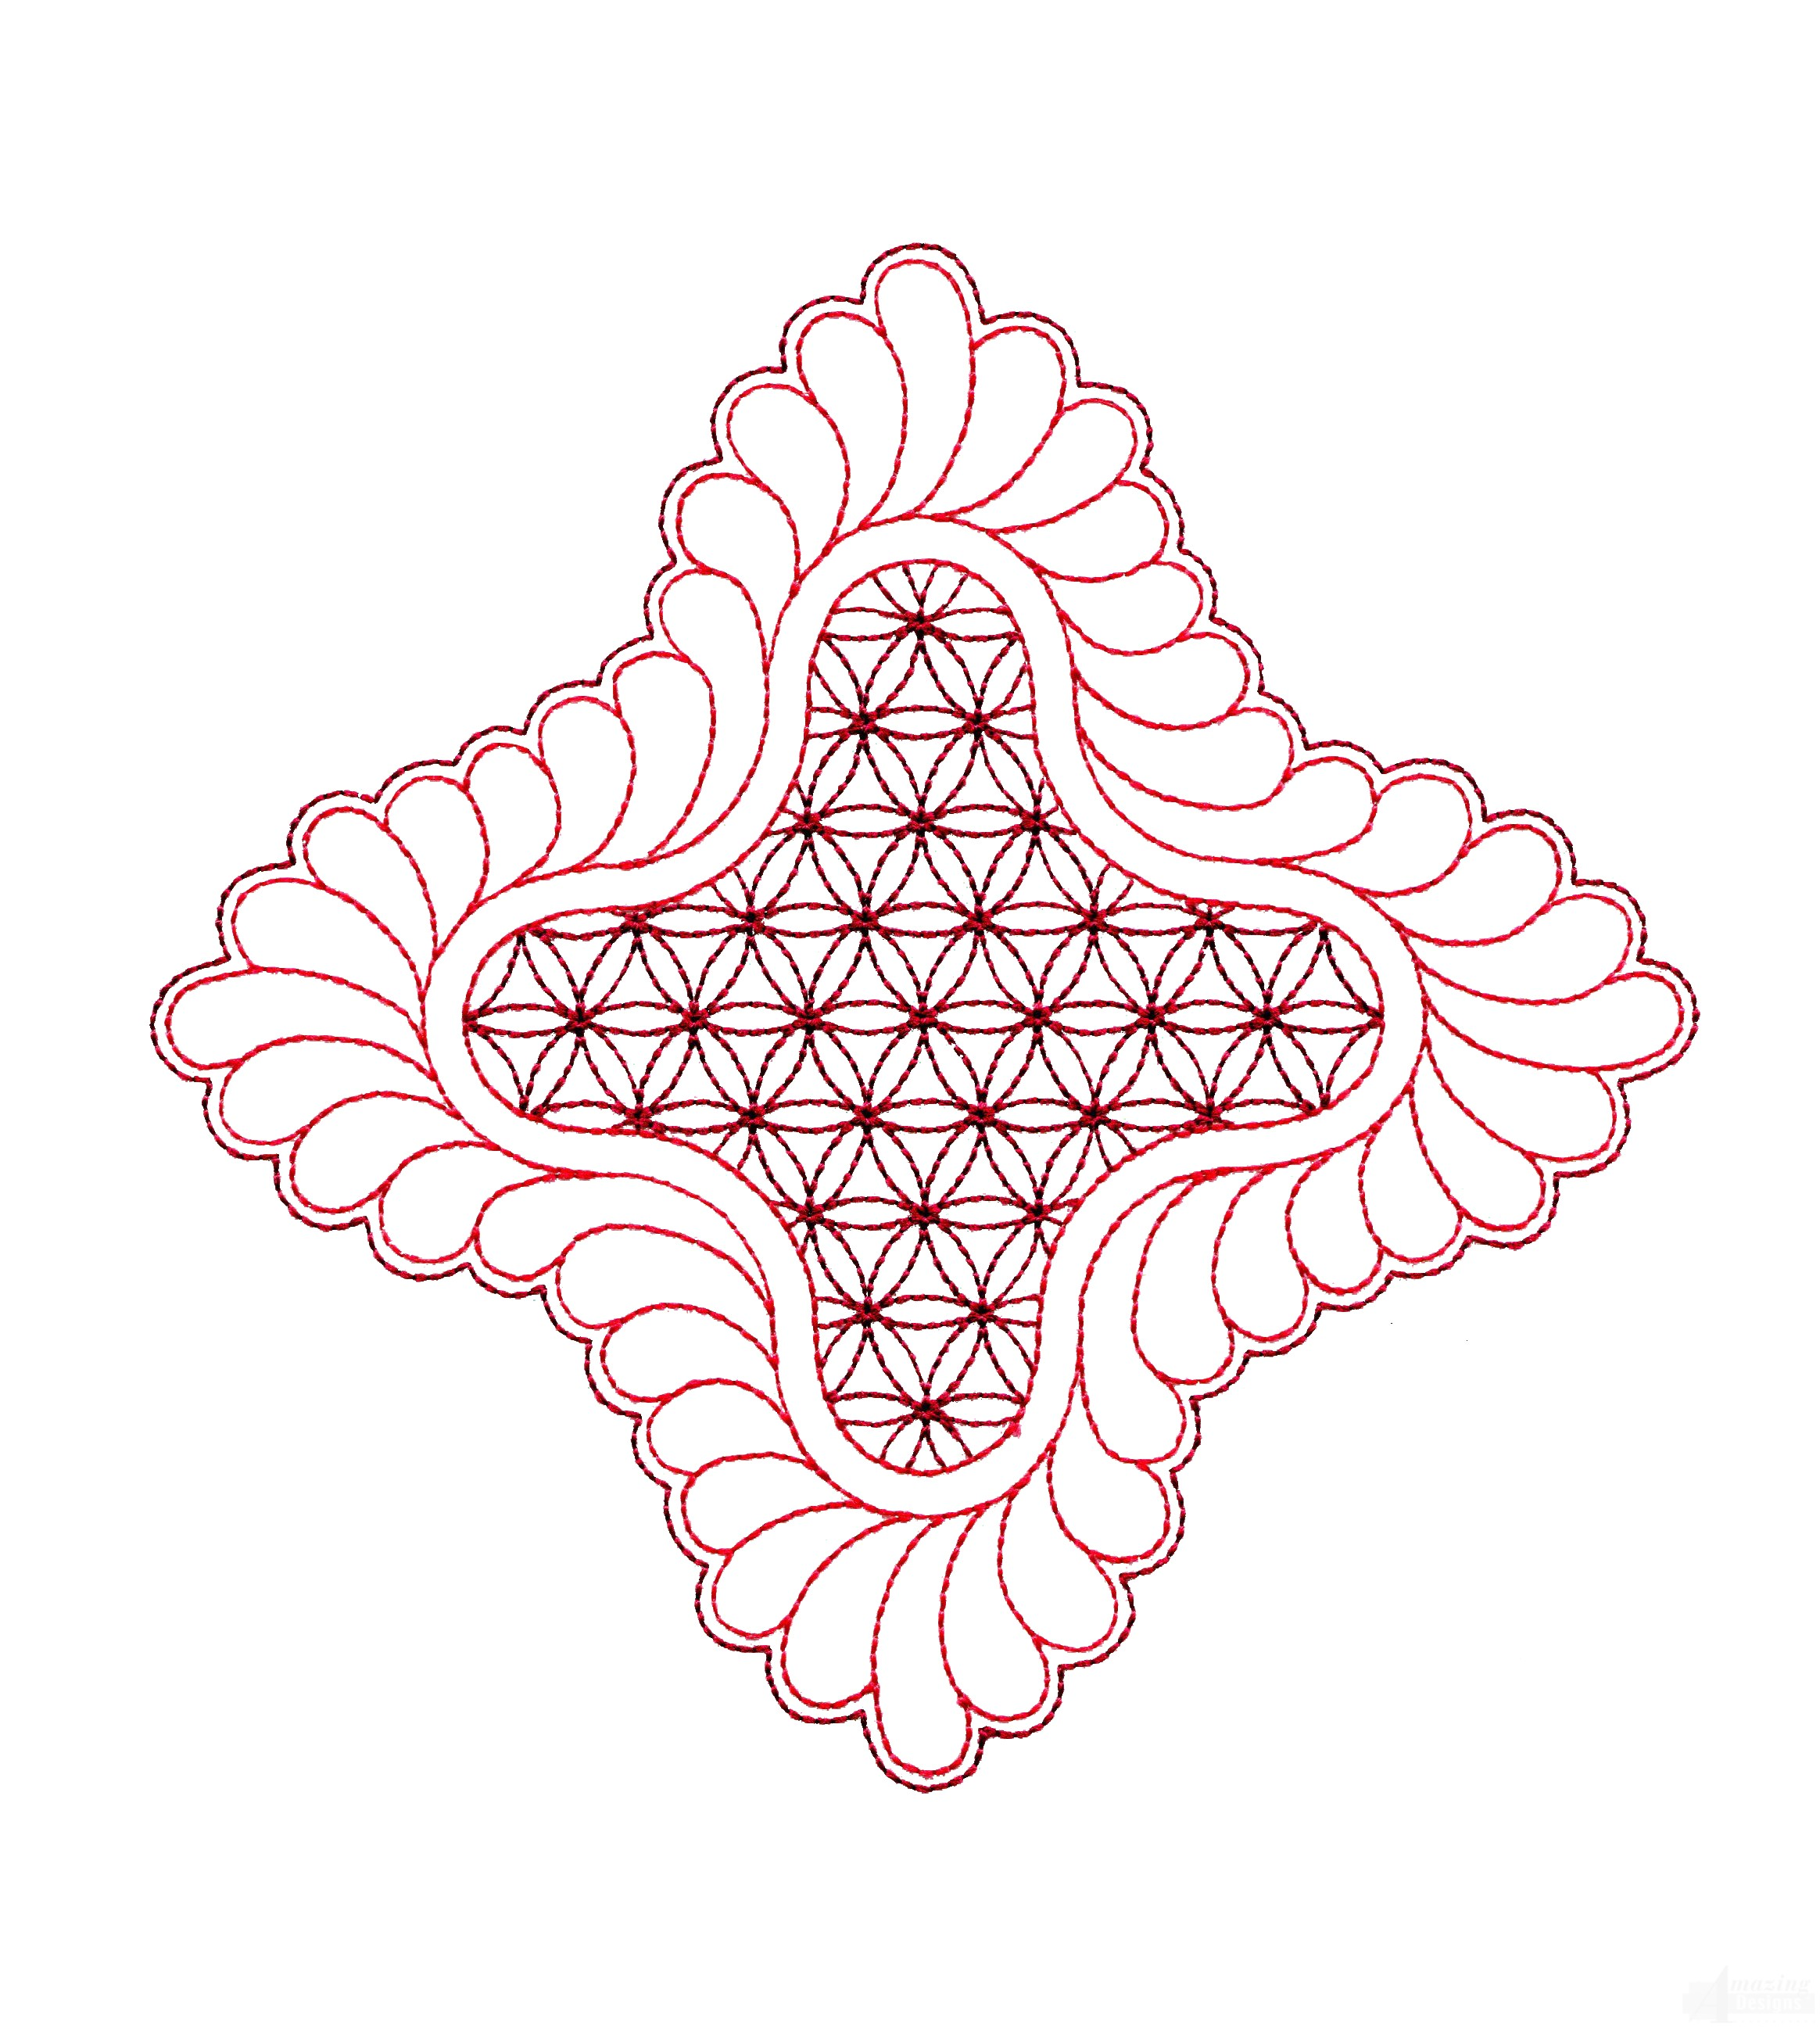 Rs101 Quilt Motif Embroidery Design